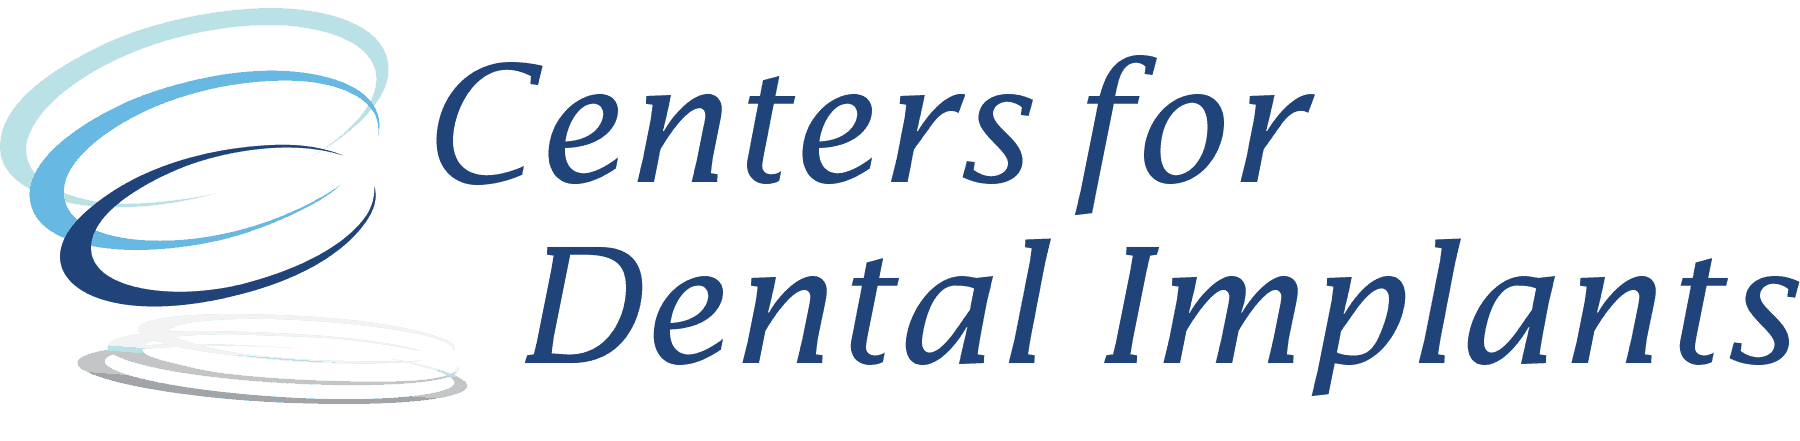 Centers For Dental Implants Logo